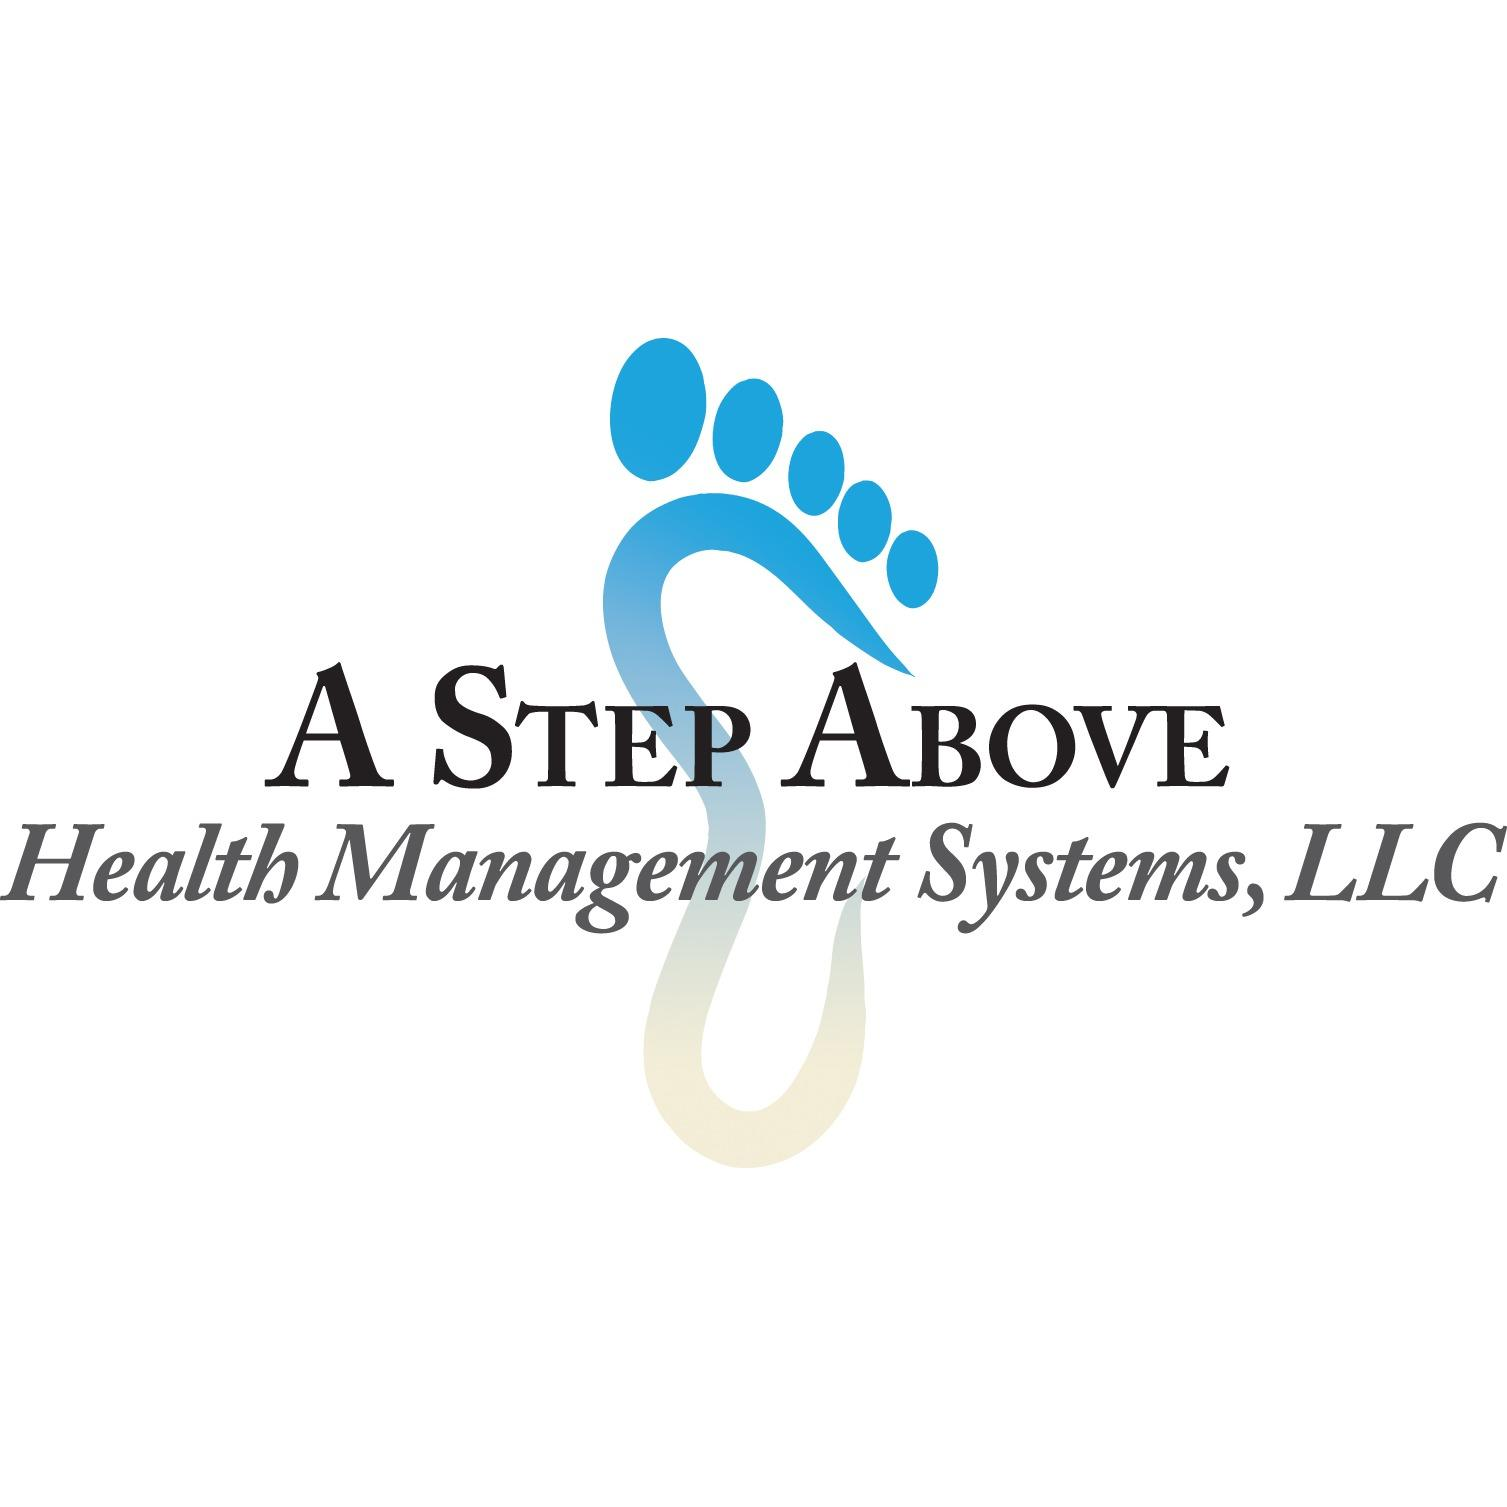 A Step Above Health Management Systems - Barnegat, NJ 08005 - (877)448-6233 | ShowMeLocal.com